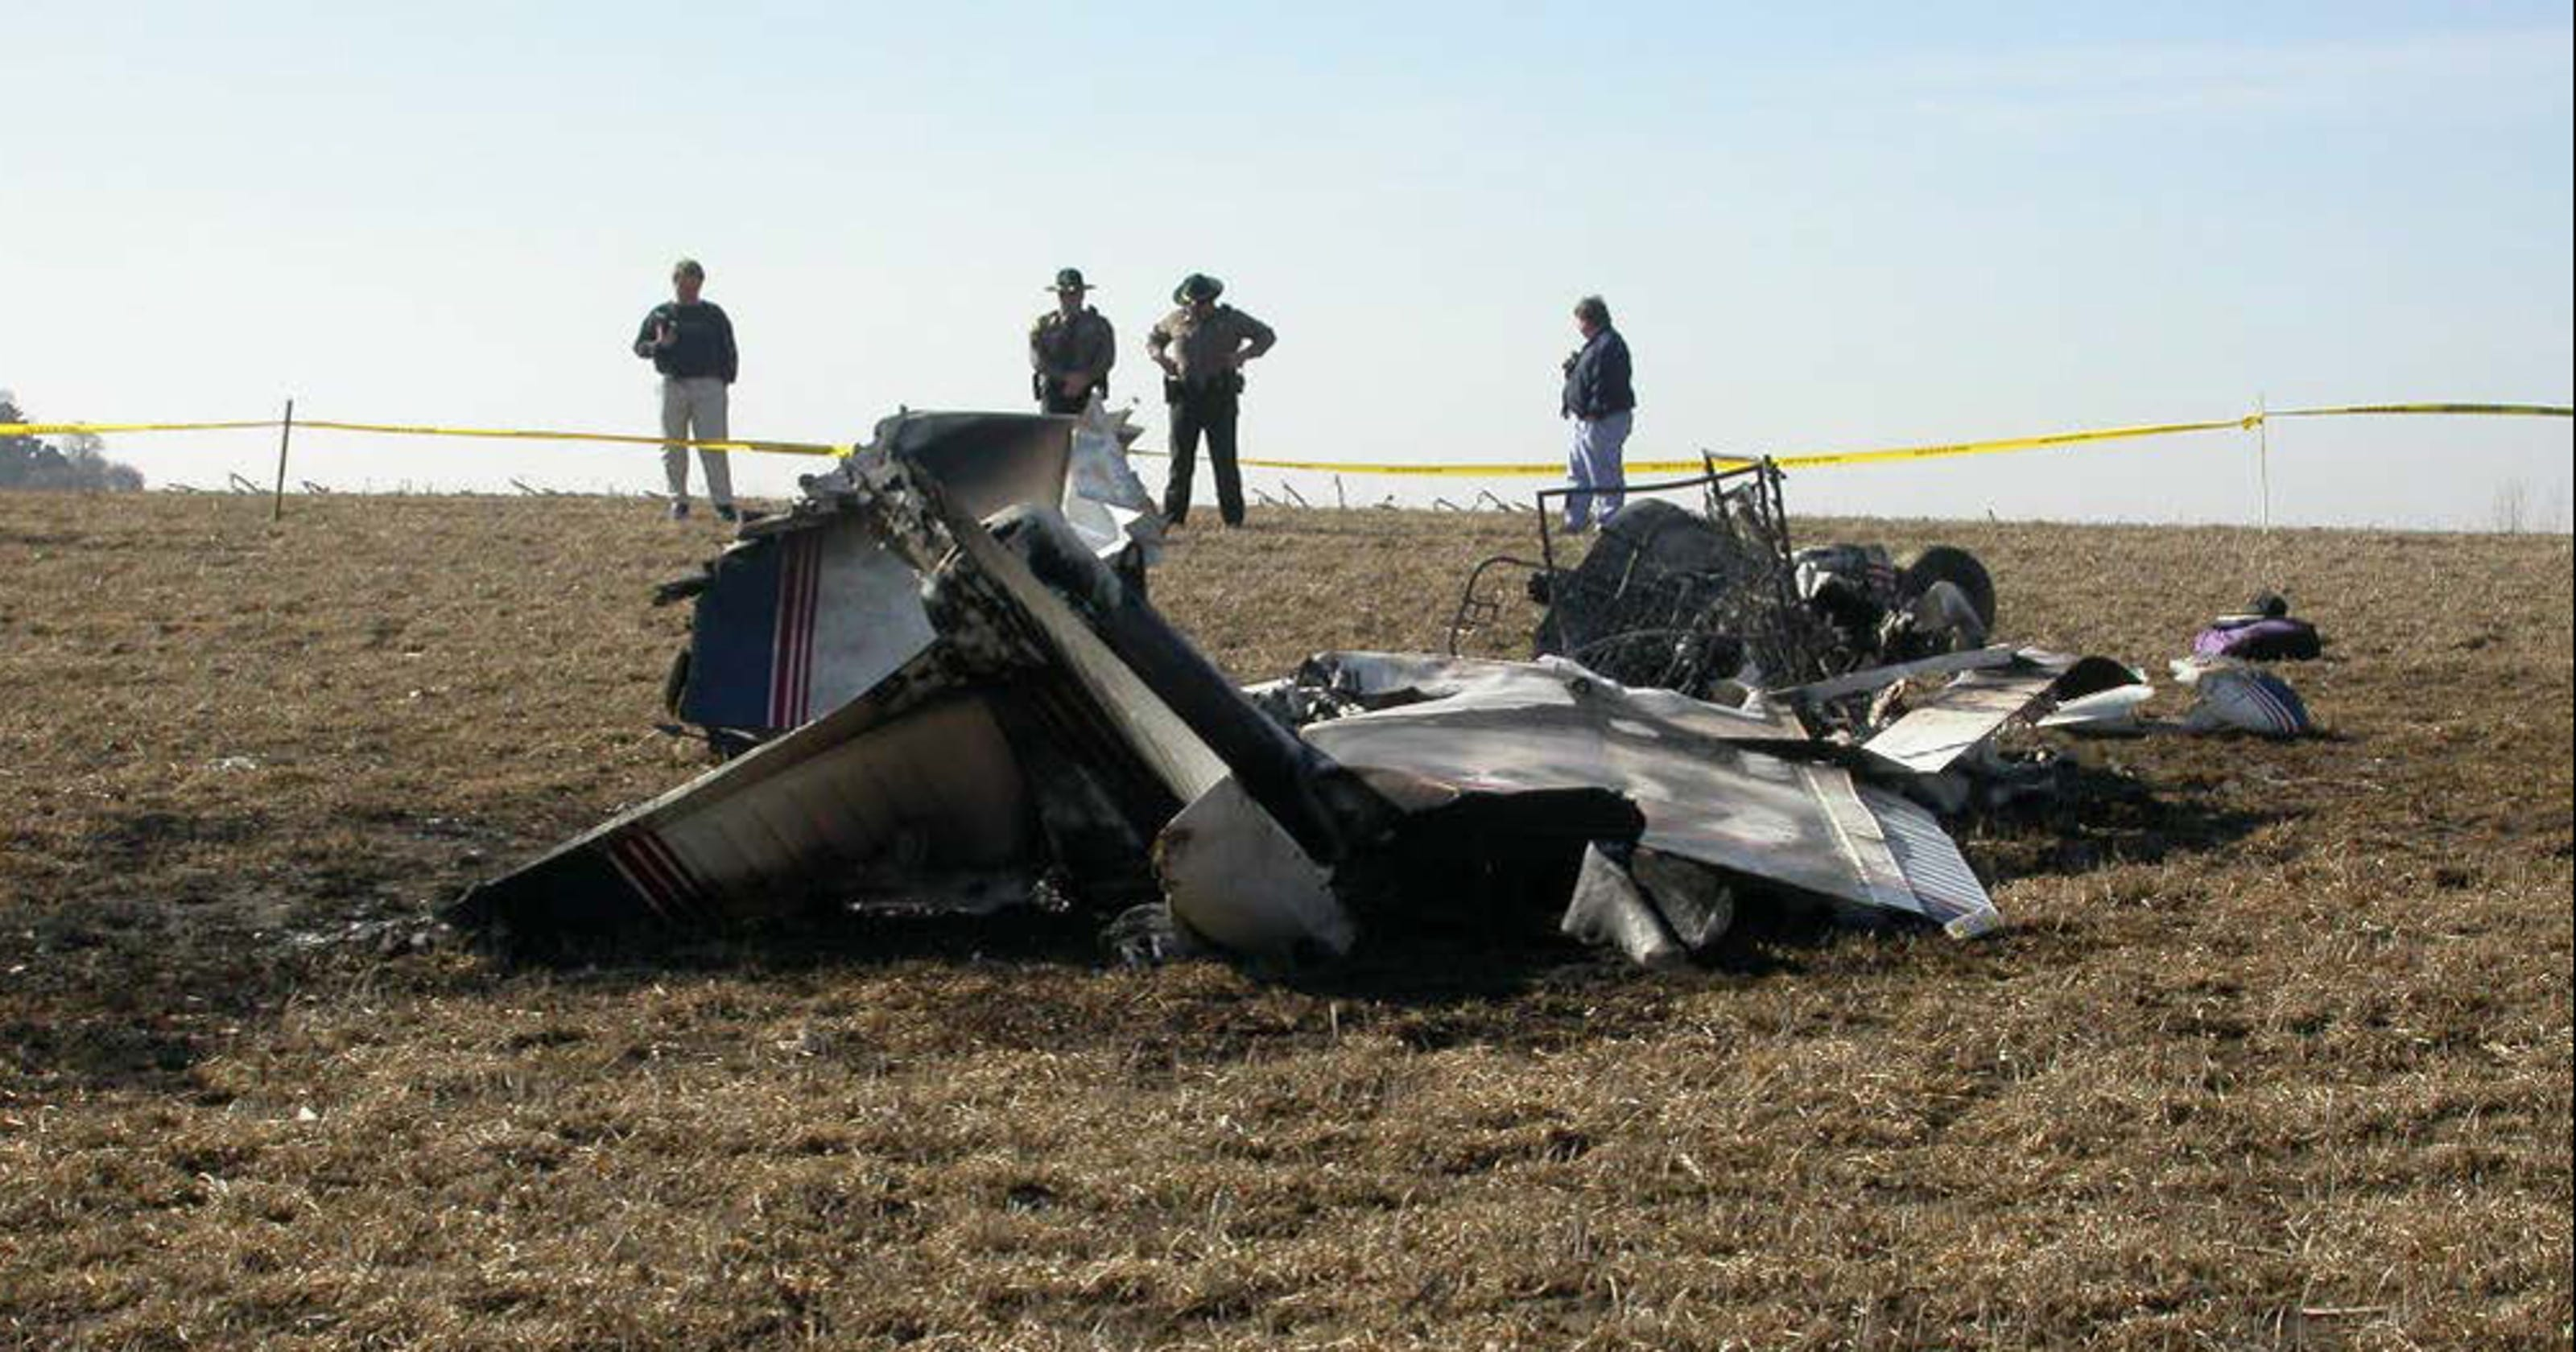 Unchecked carnage: NTSB probes are skimpy for small-aircraft